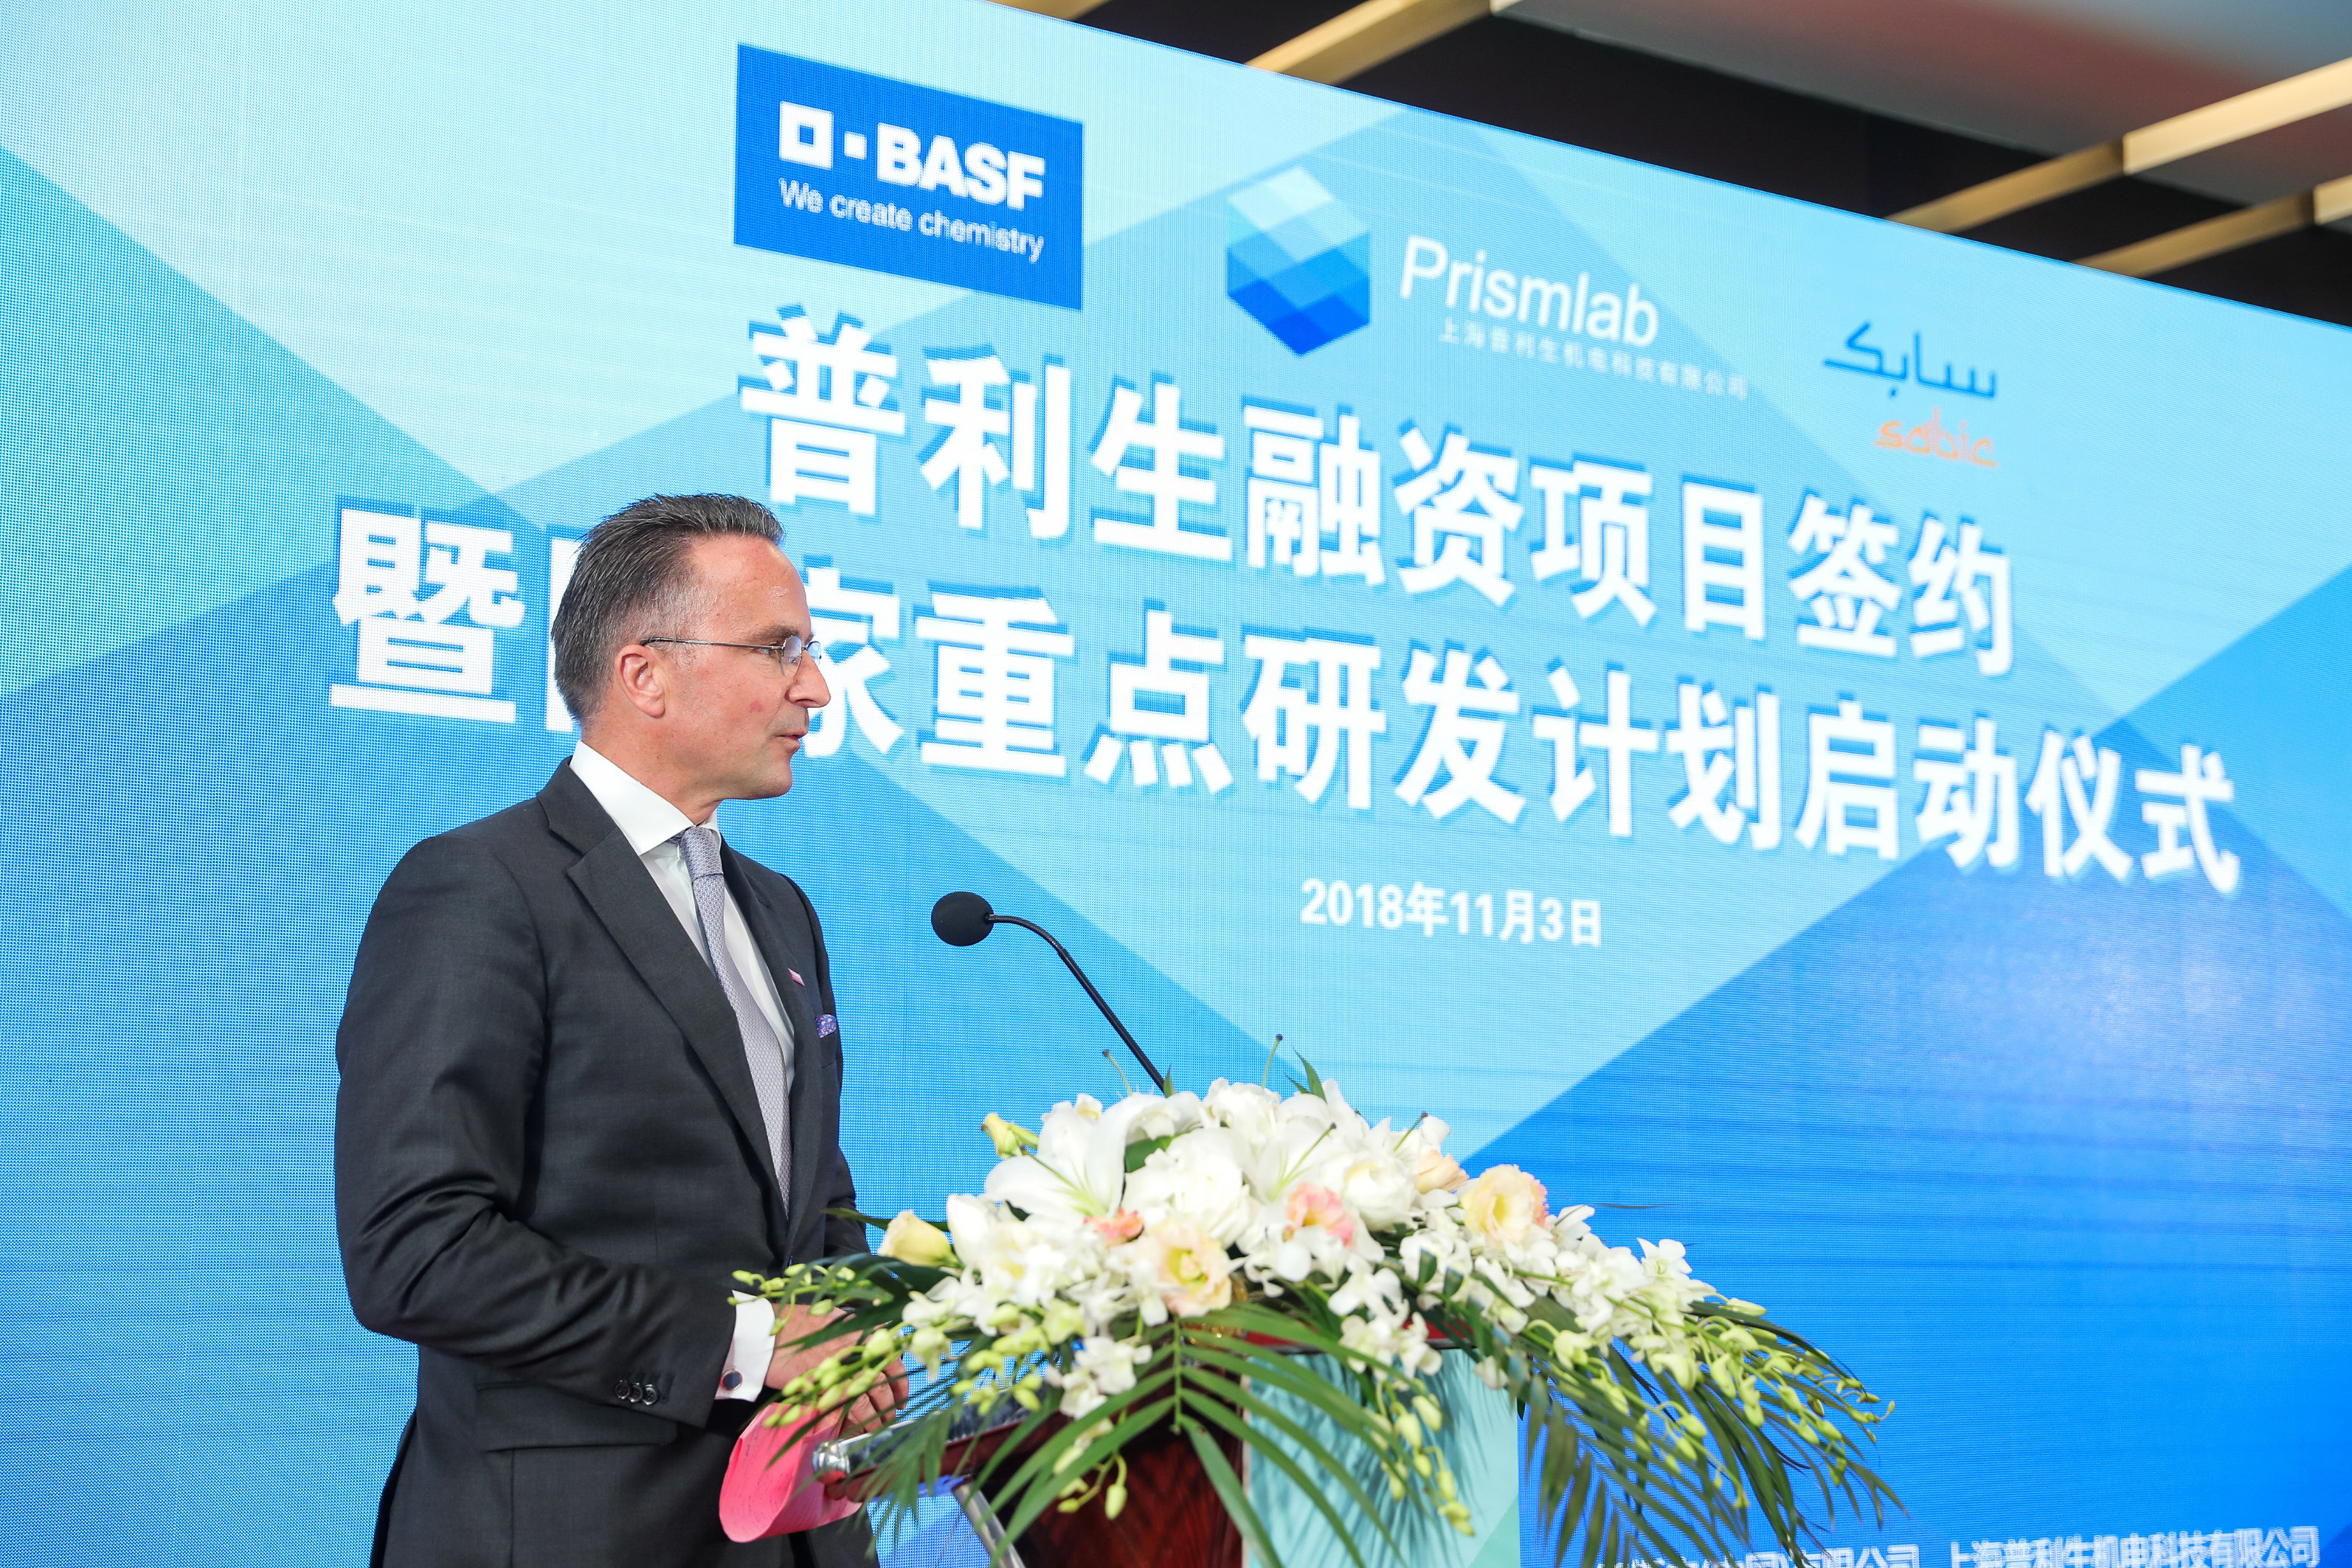 BASF invests in Chinese 3D printing specialist Prismlab